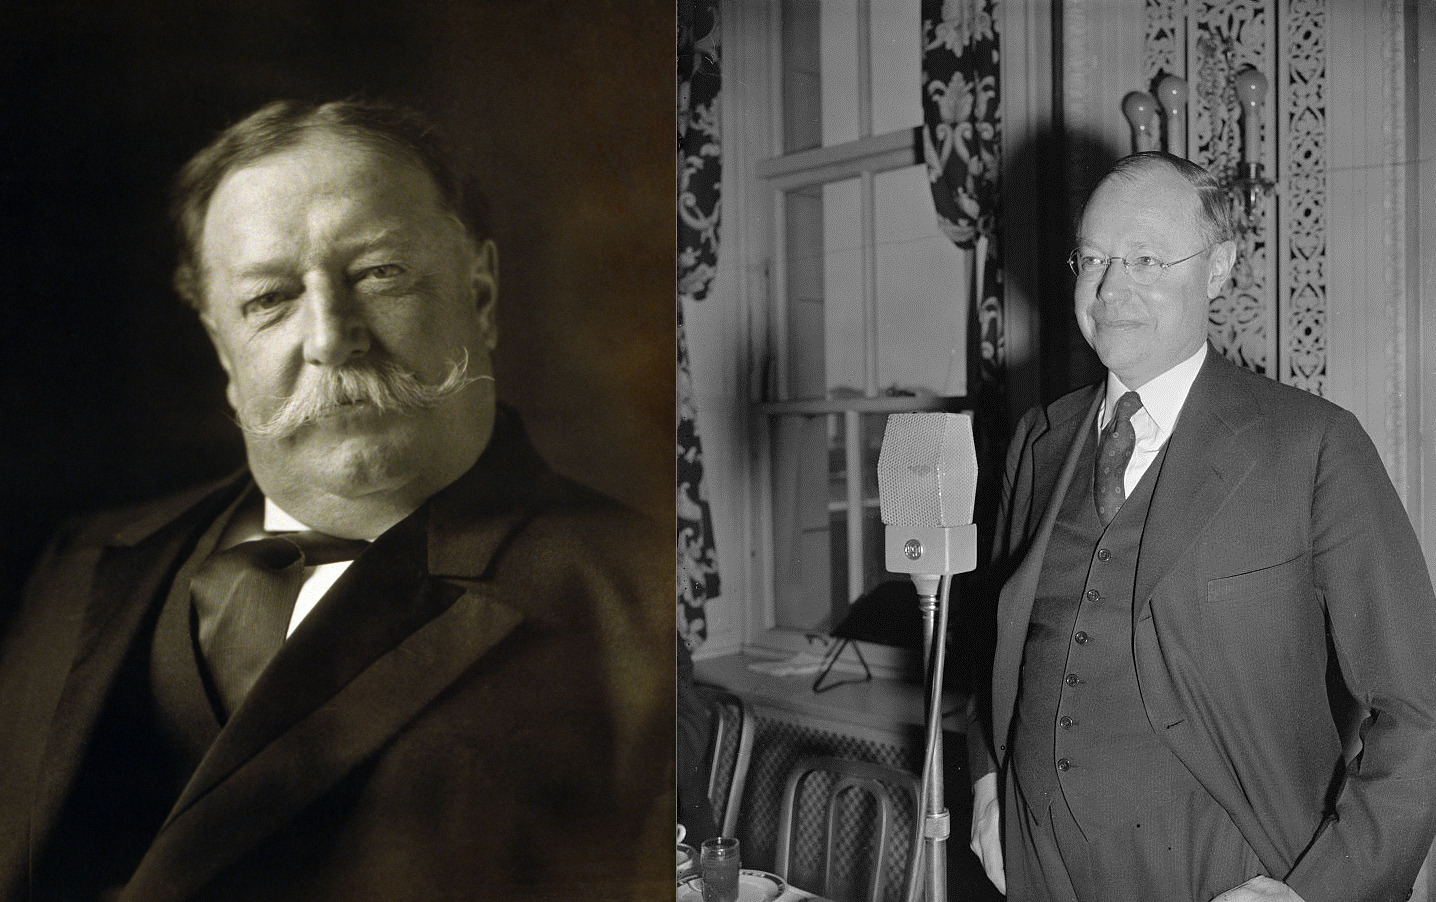 William Howard Taft, 27th U.S. President (left, public domain through the US Library of Congress) and his son, Ohio State Senator from 1939 - 1954, Robert A. Taft (right, public domain through US Library of Congress)